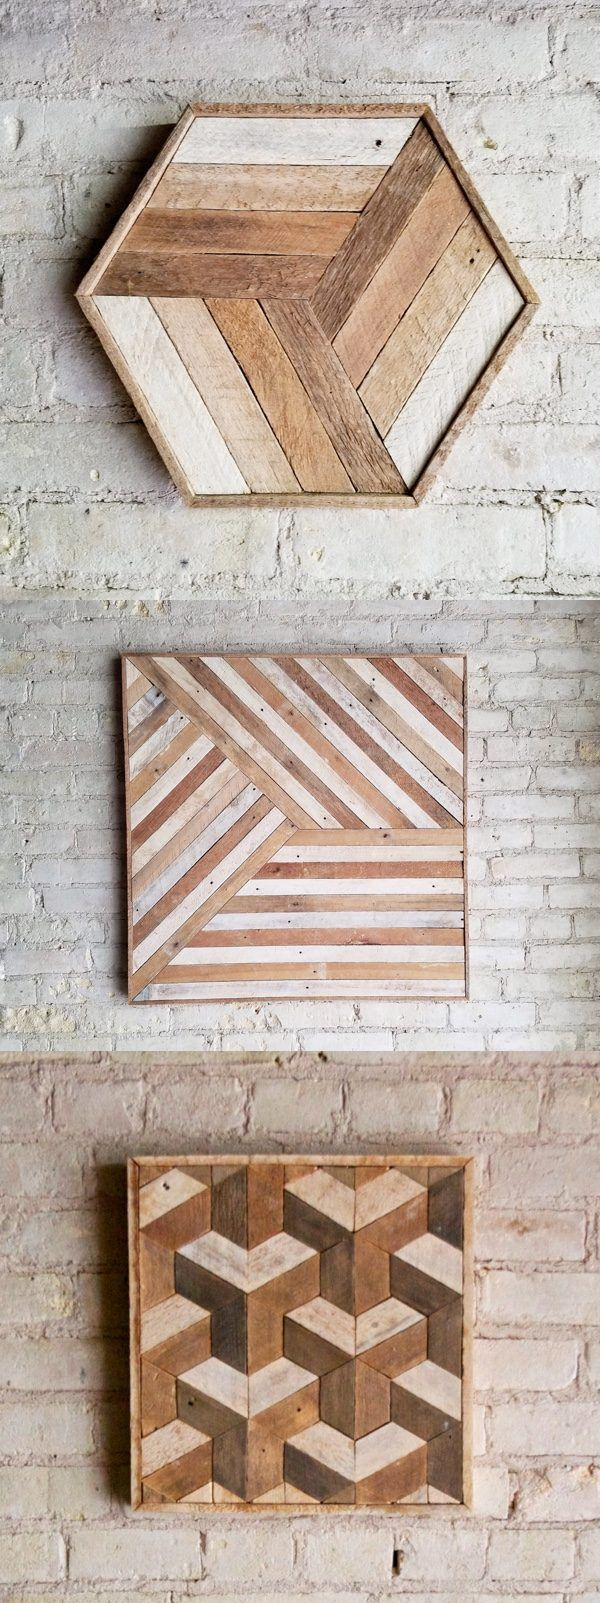 Pallet Home Best 10 Pallet Wall Decor Ideas On Pinterest Pallet Walls Wood